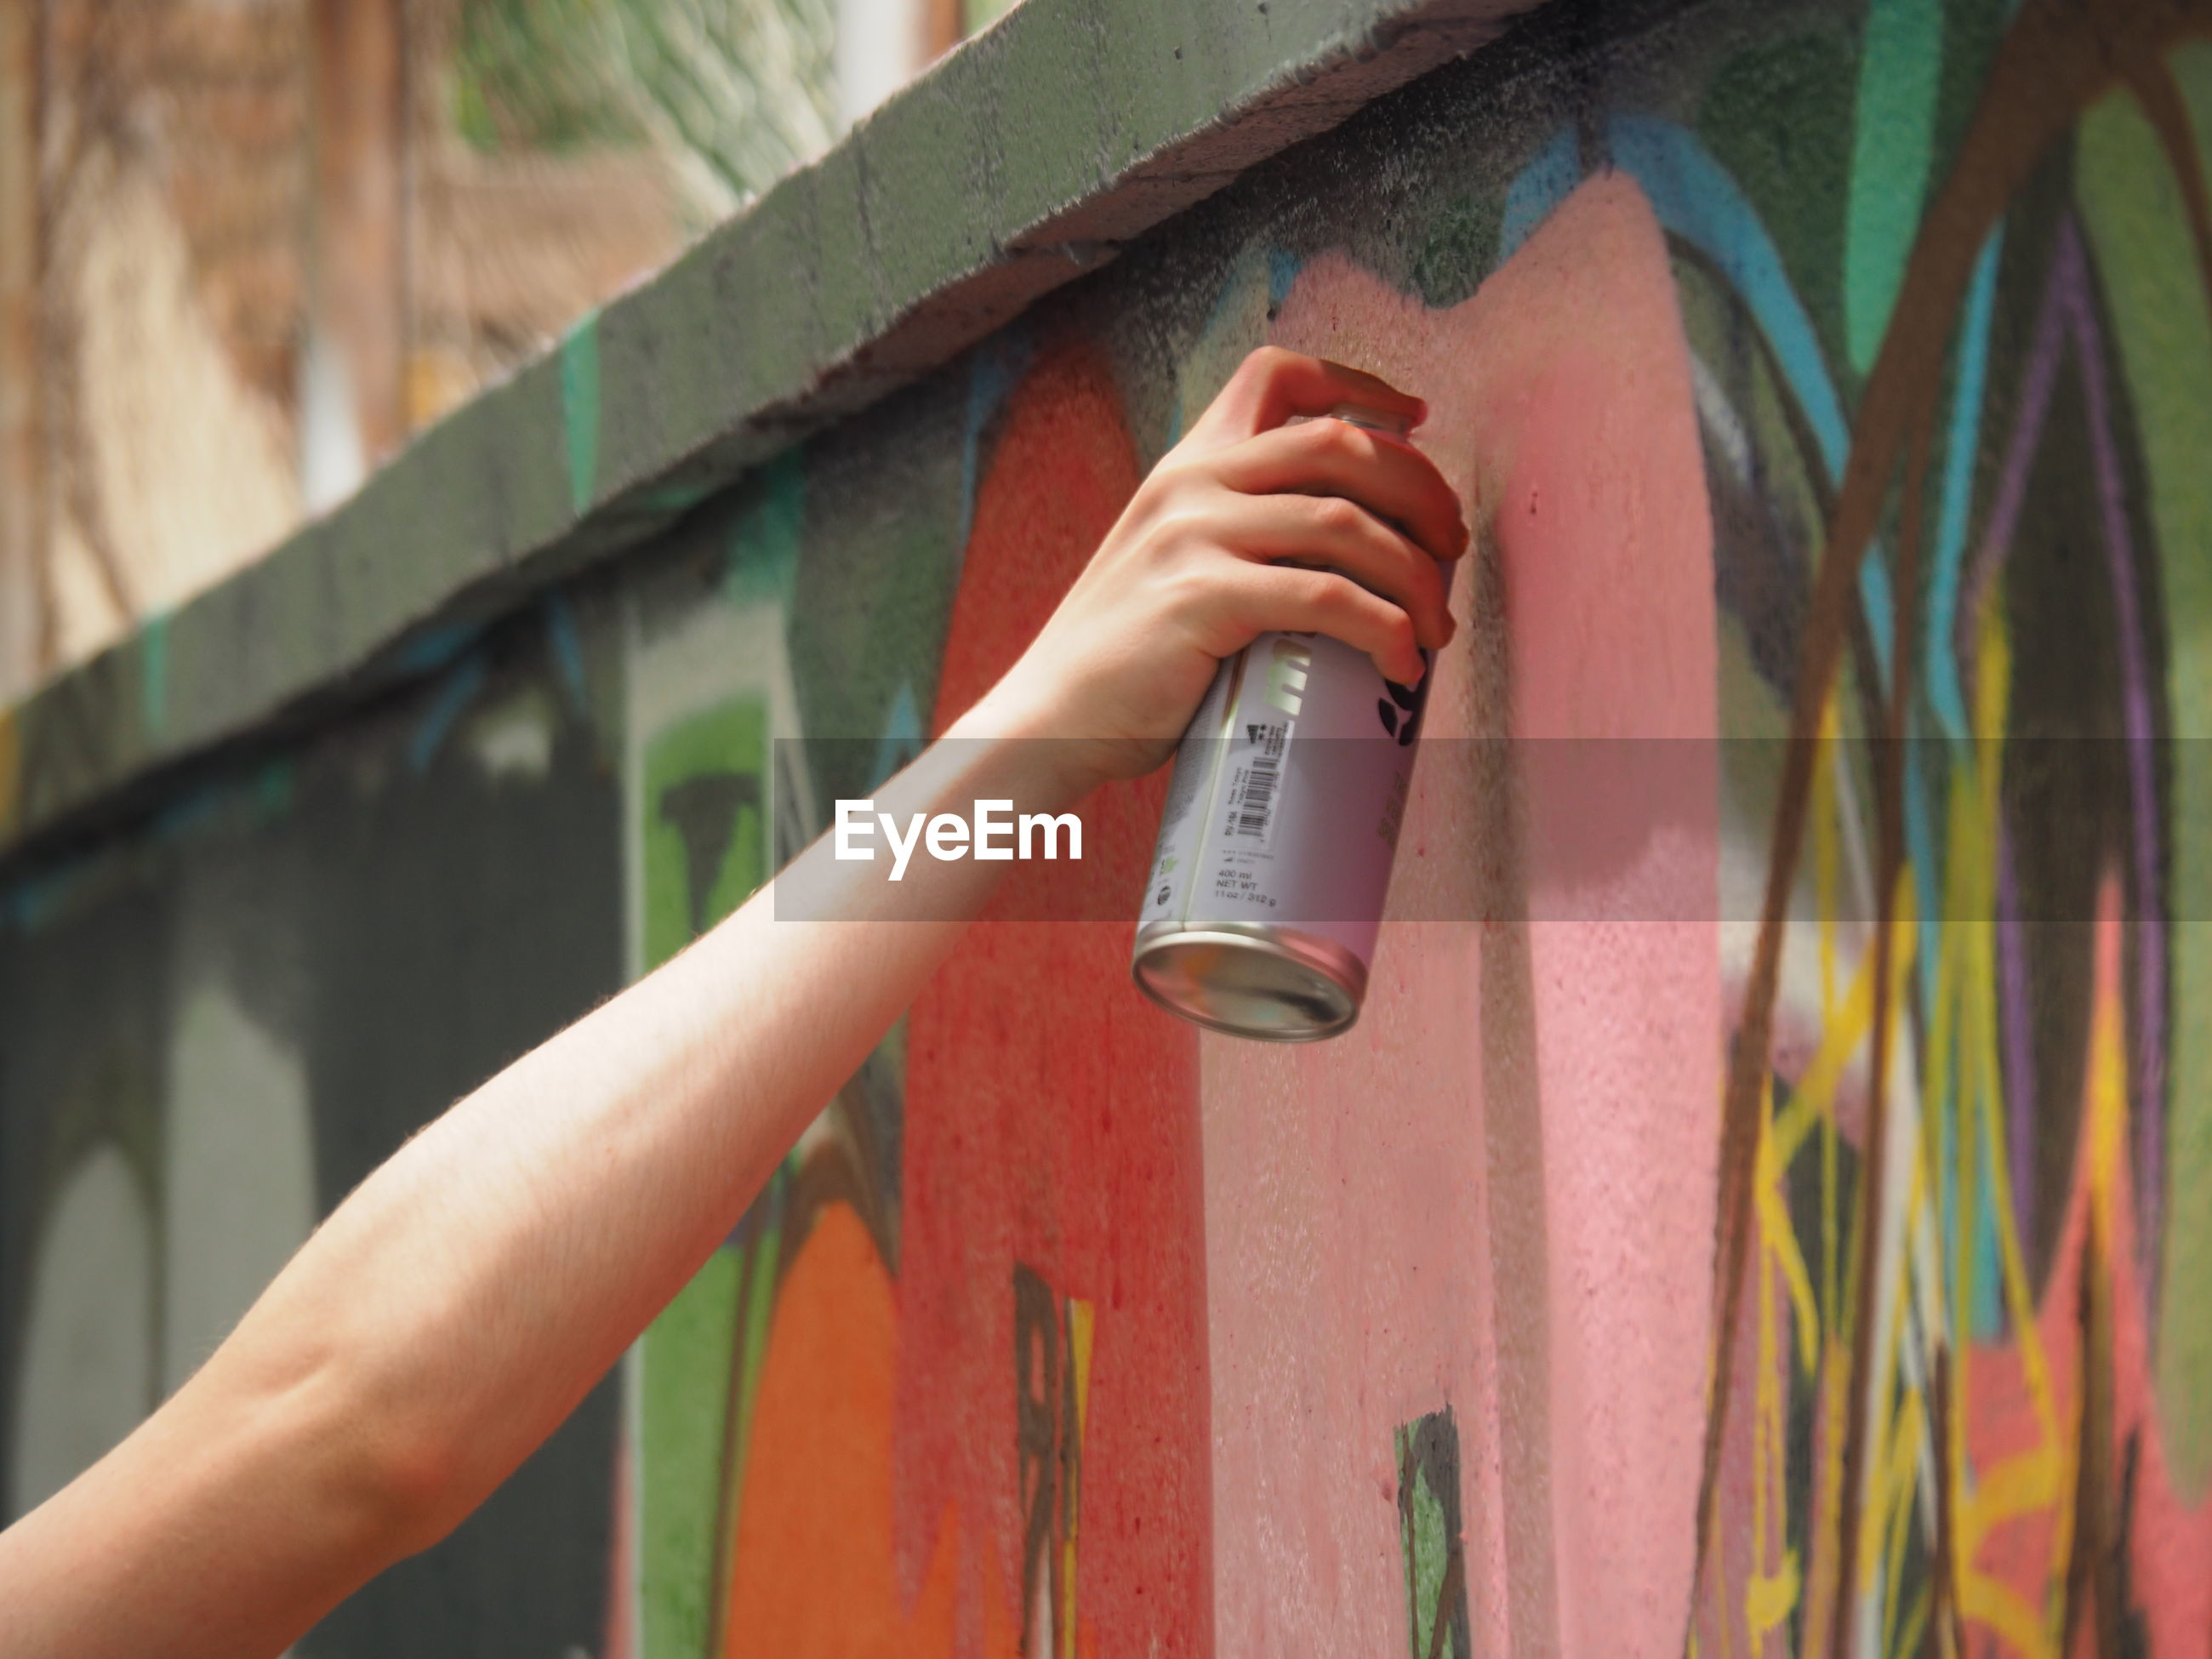 Cropped image of person painting graffiti on wall